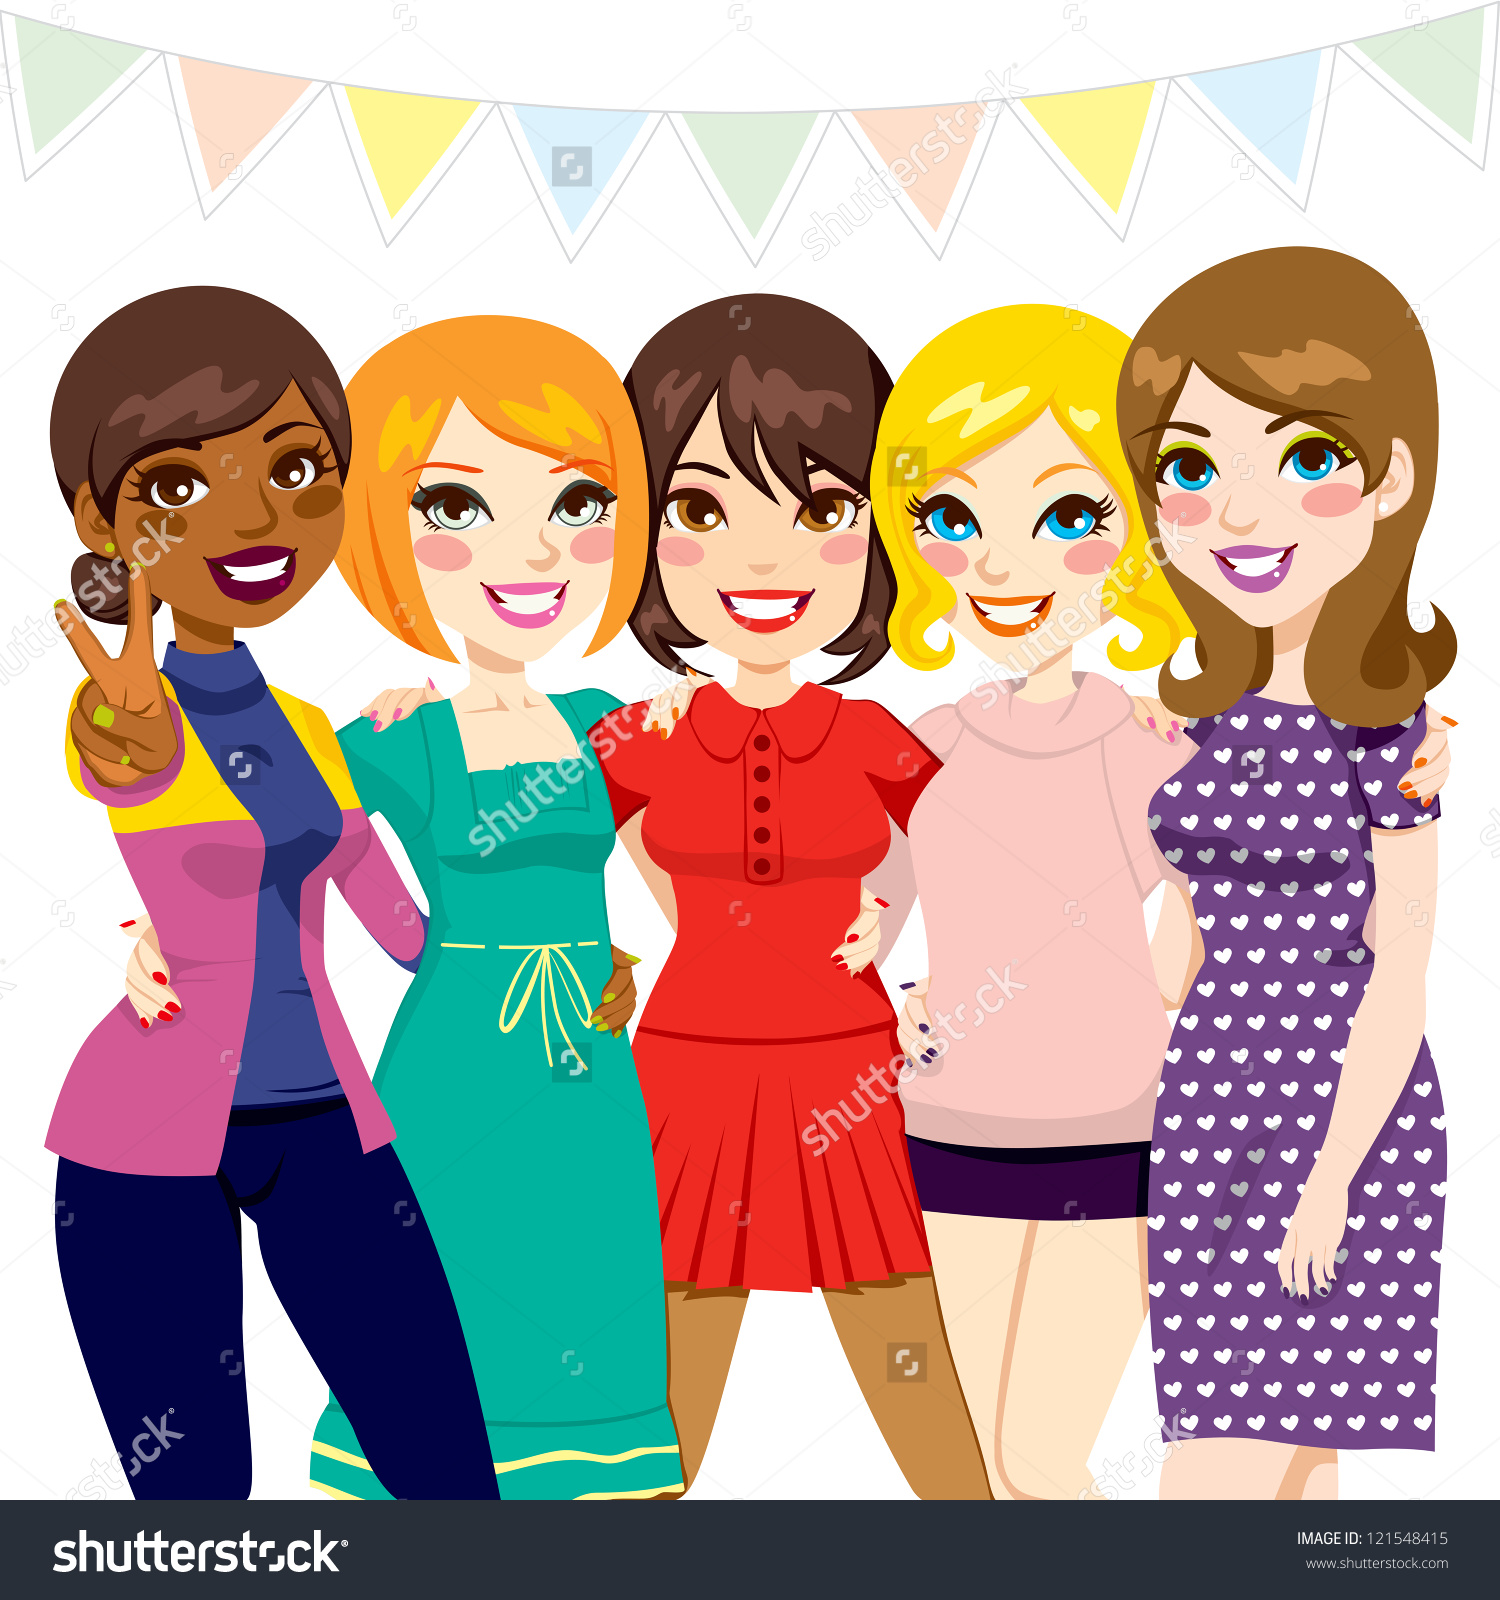 Women Having Fun Clipart.